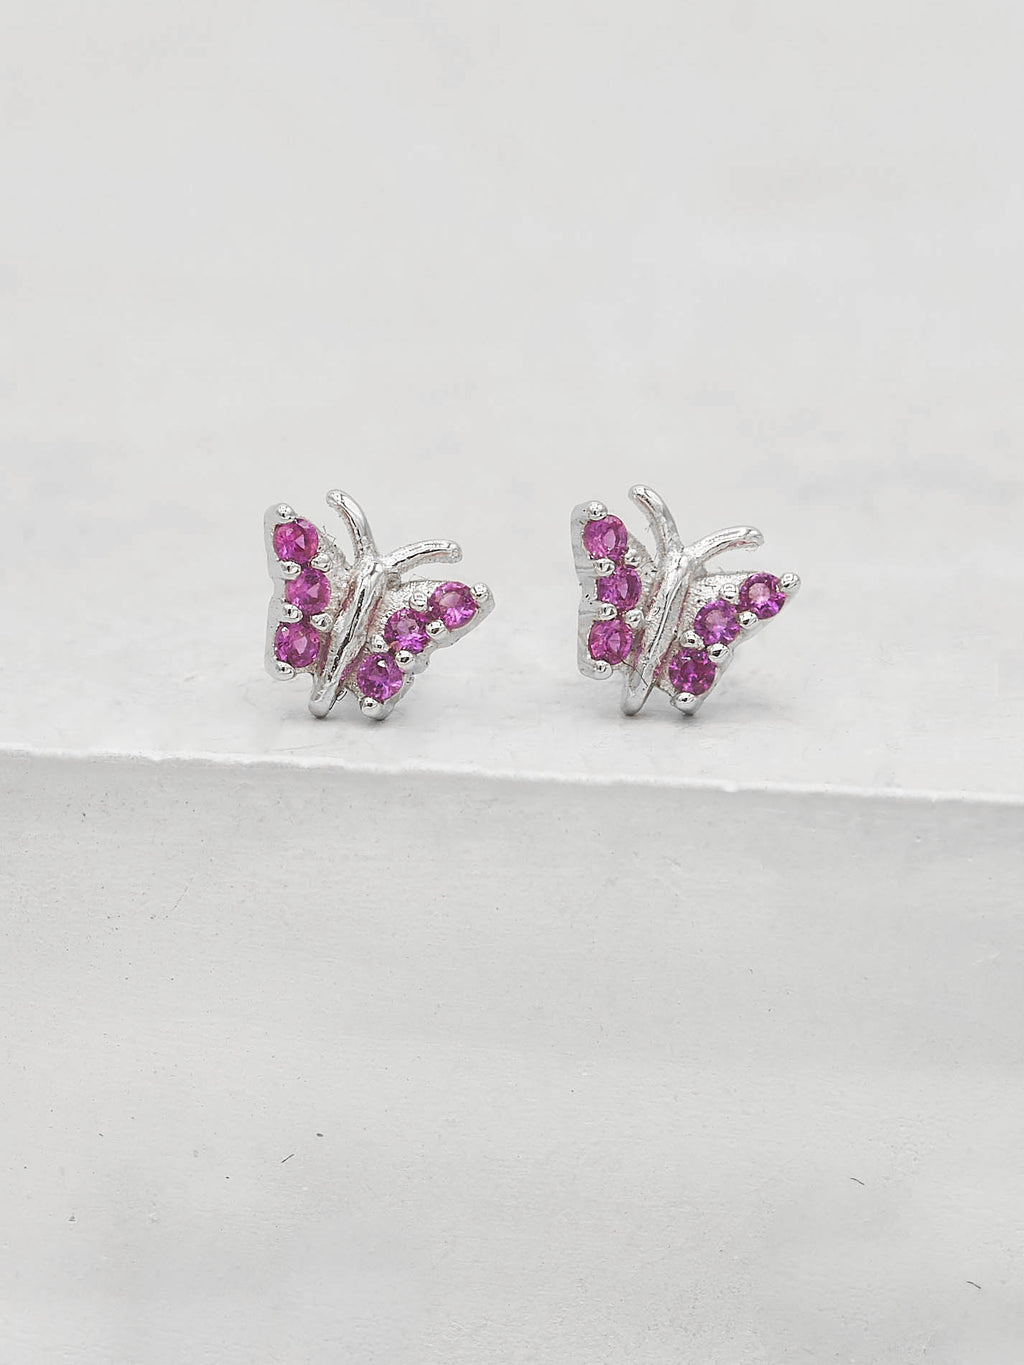 Rhodium Plated  Tiny butterfly with Pink CZ cubic Zirconia Dainty Stud Earrings by The Faint Hearted jewelry